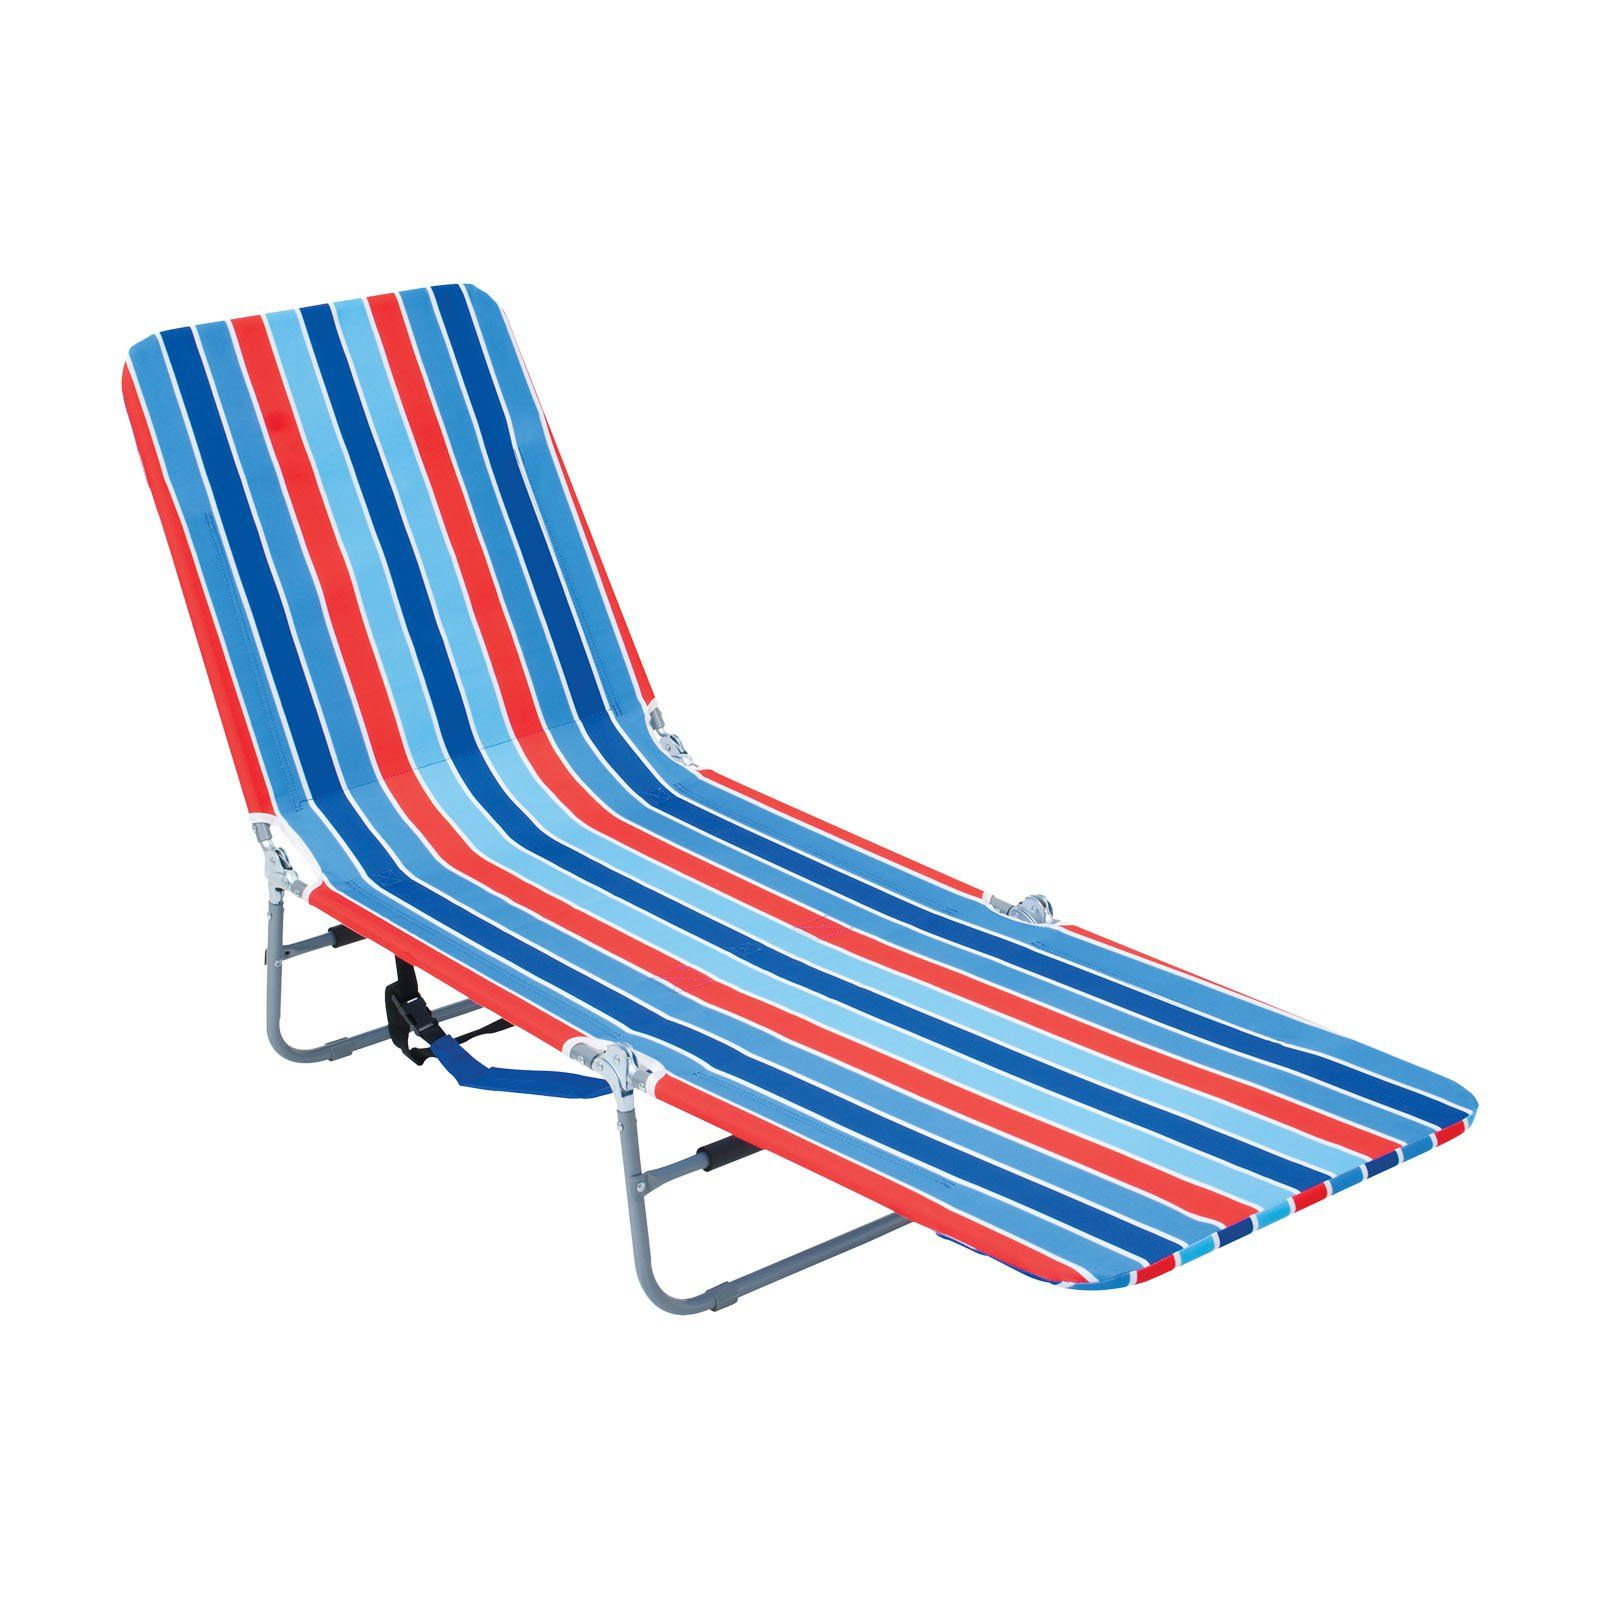 Outdoor Rio Brands Backpack Lounge Chair Beach Lounge Chair